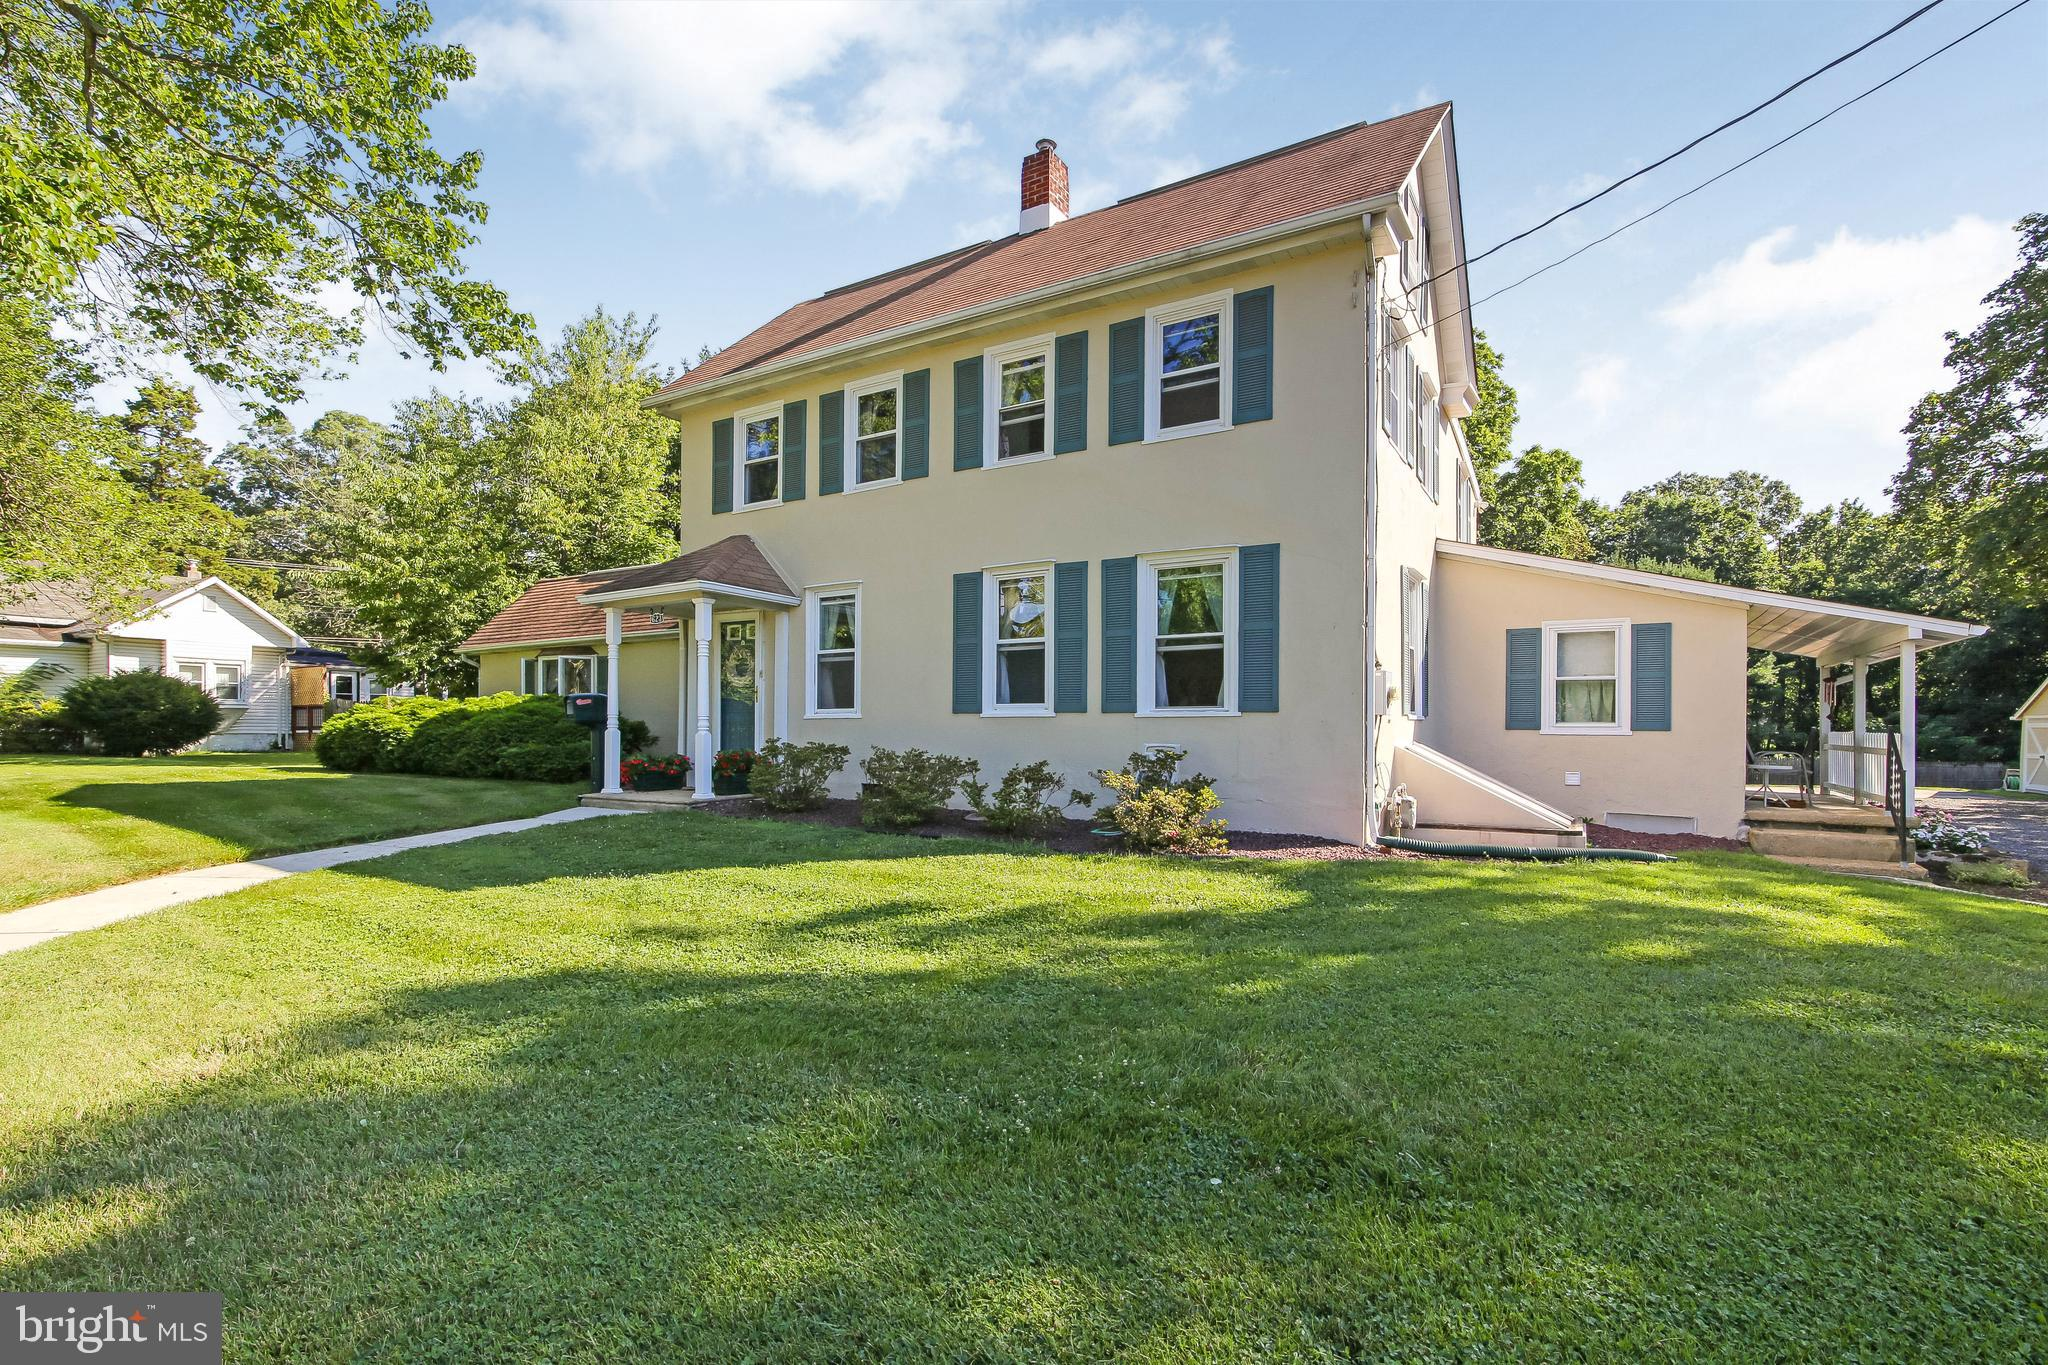 623 CEDAR AVENUE, PITMAN, NJ 08071